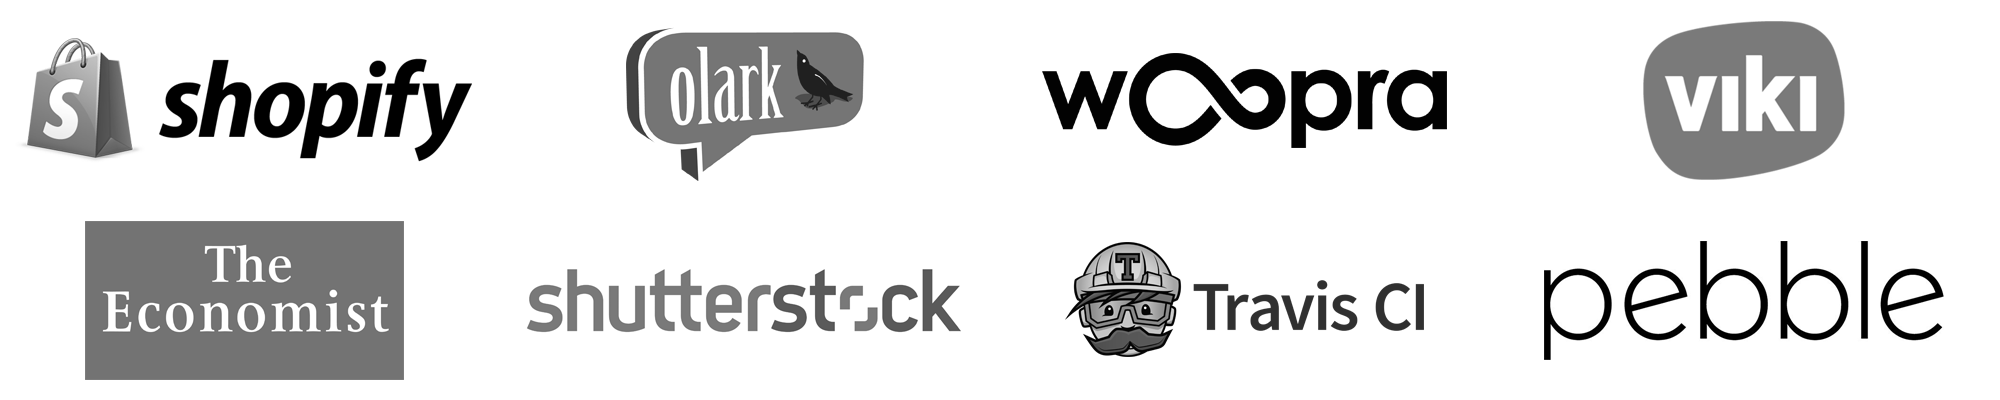 Shopify, Viki, and Pebble are just some of the companies that use and trust Customer.io!